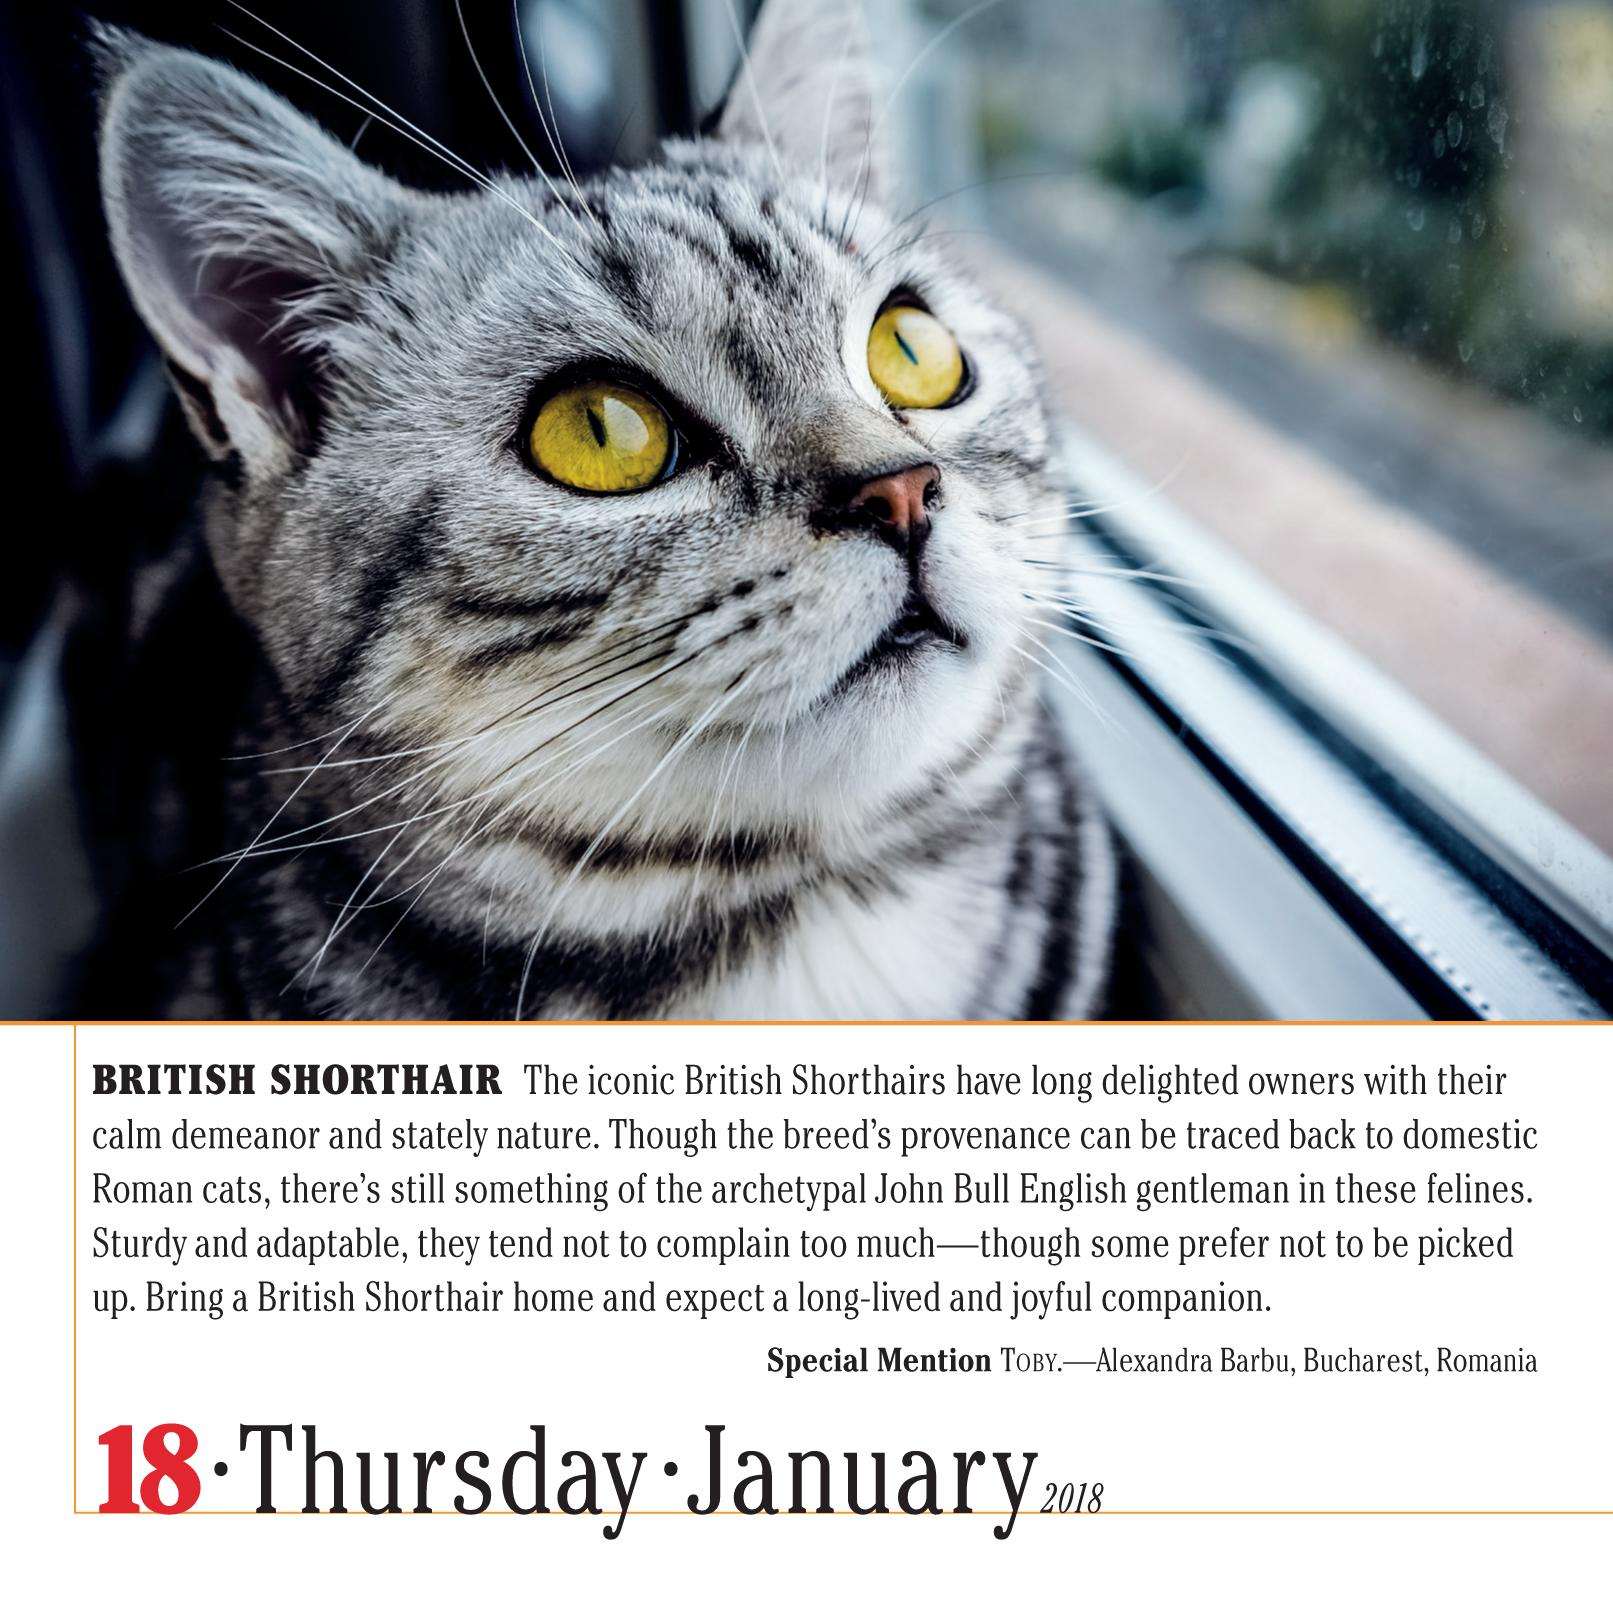 365 cats page a day calendar 2018 workman publishing 9781523500796 books amazon ca